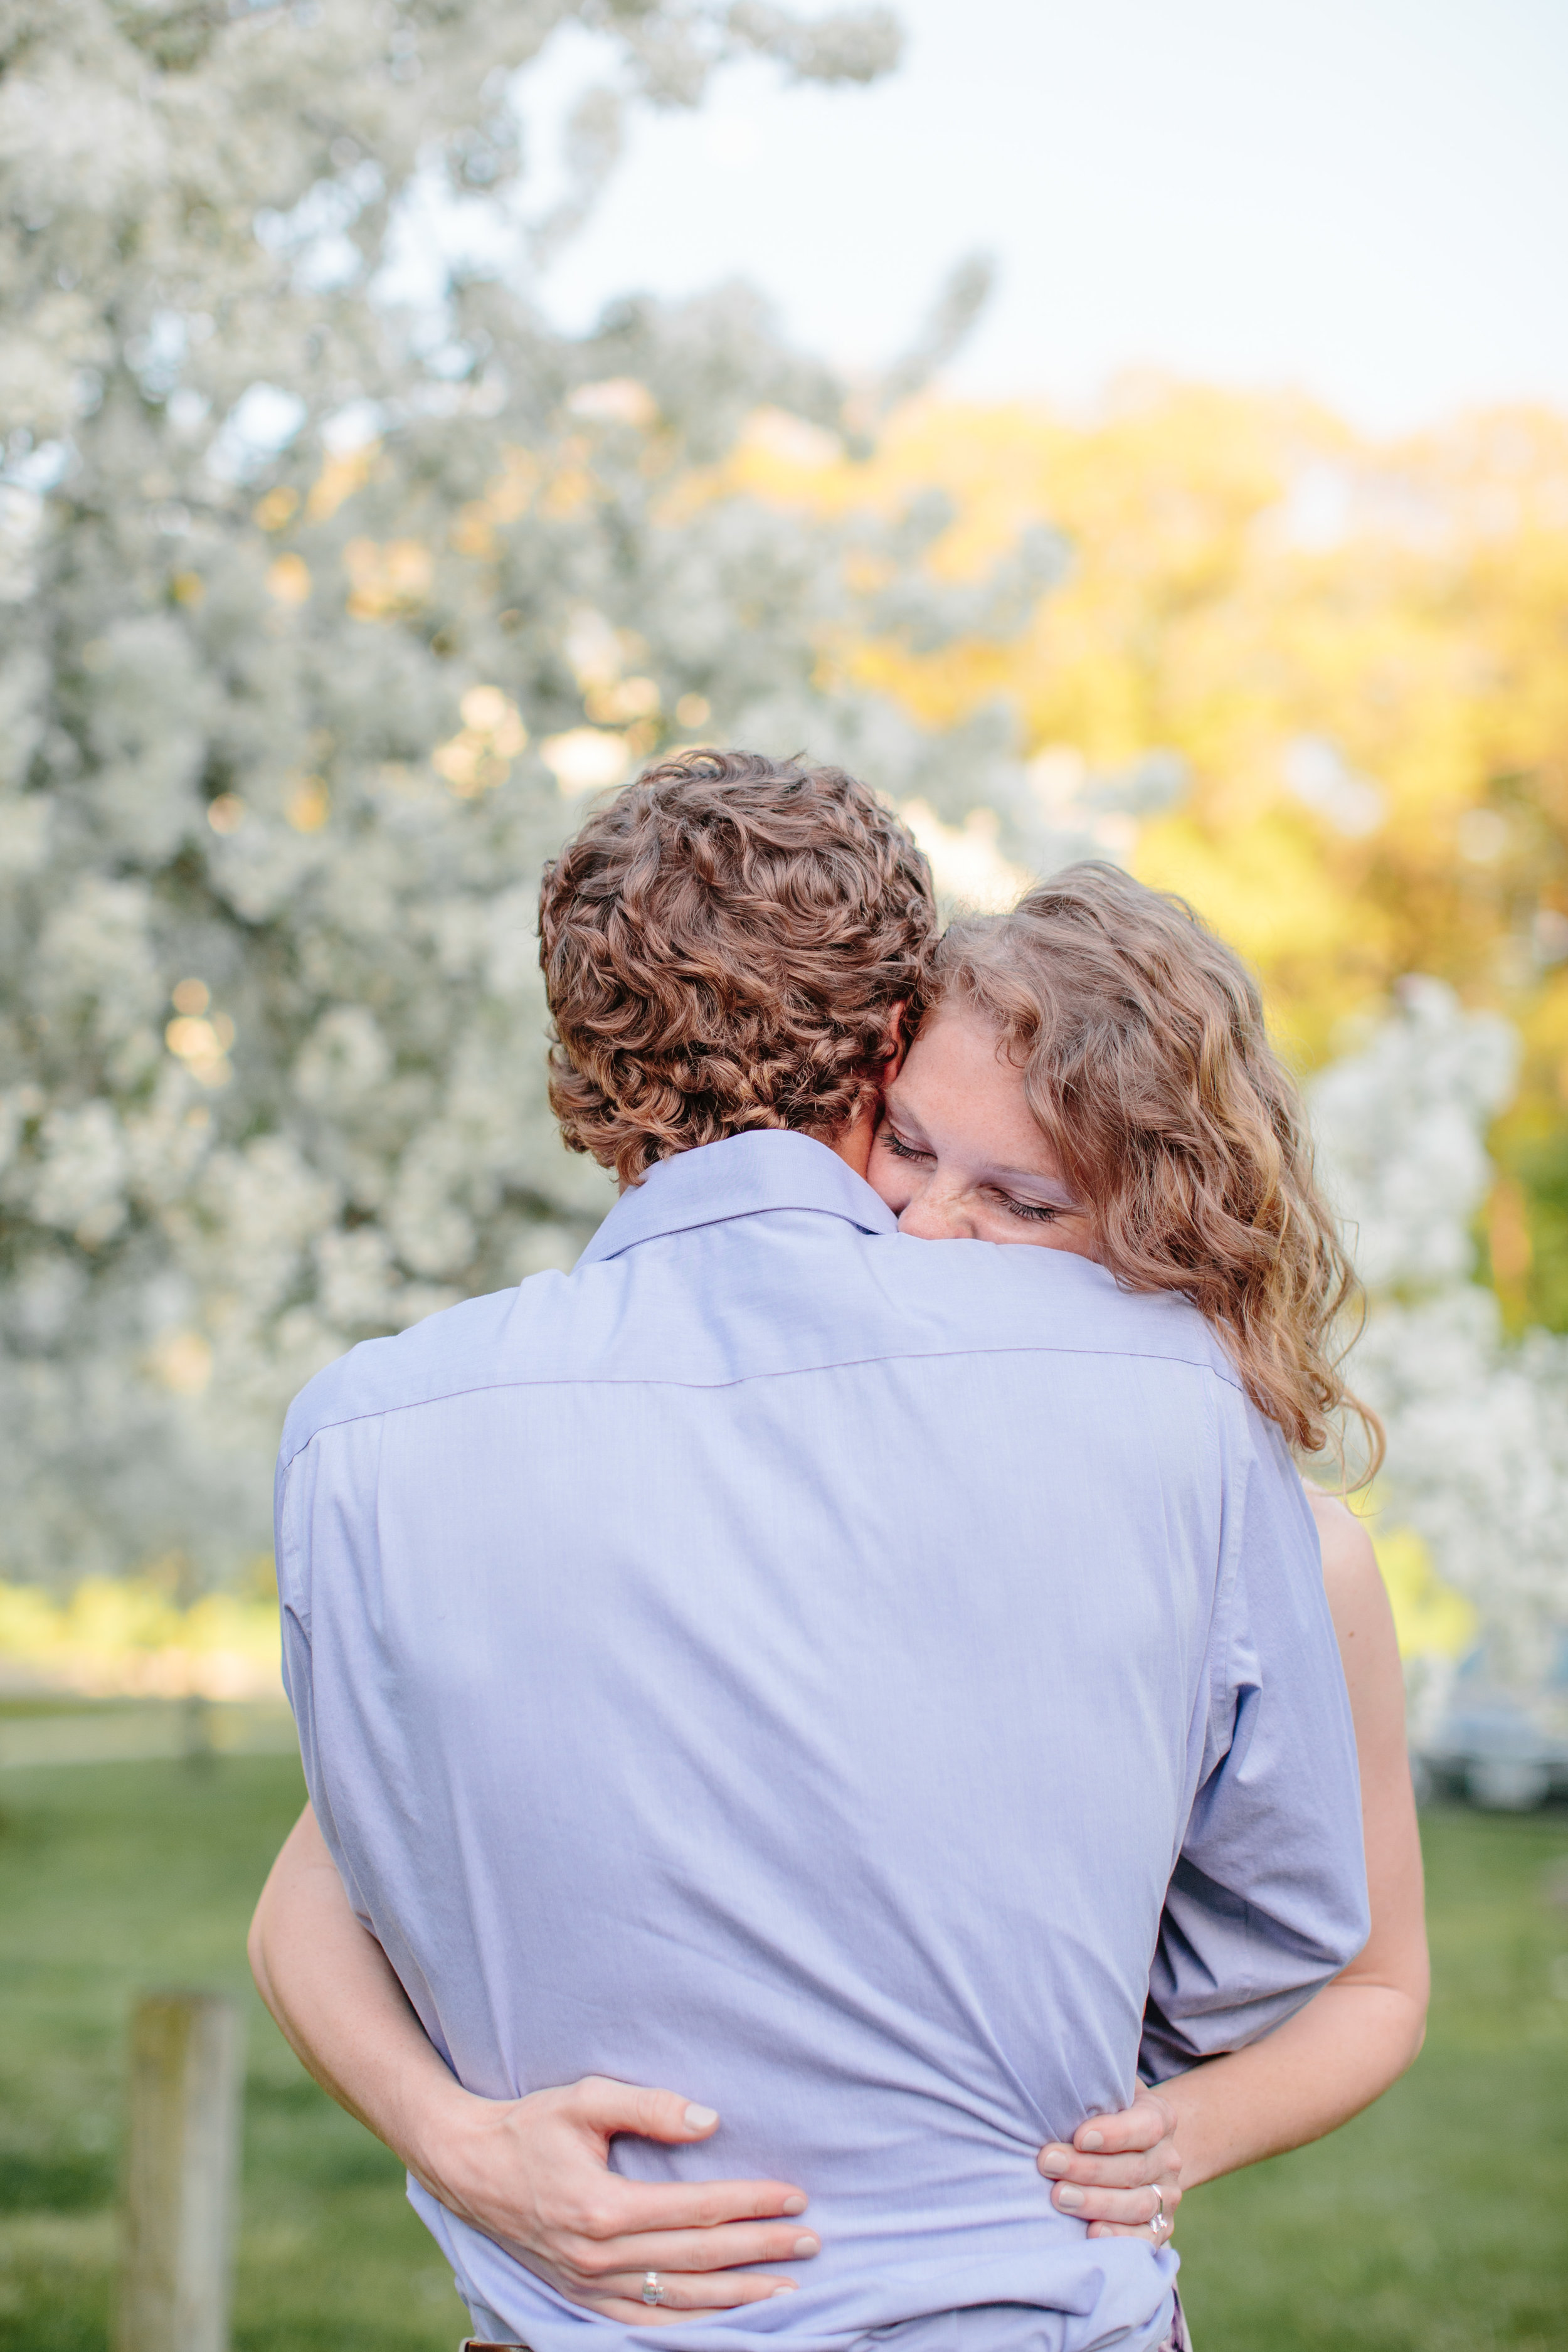 fiance hugging her groom to be in park